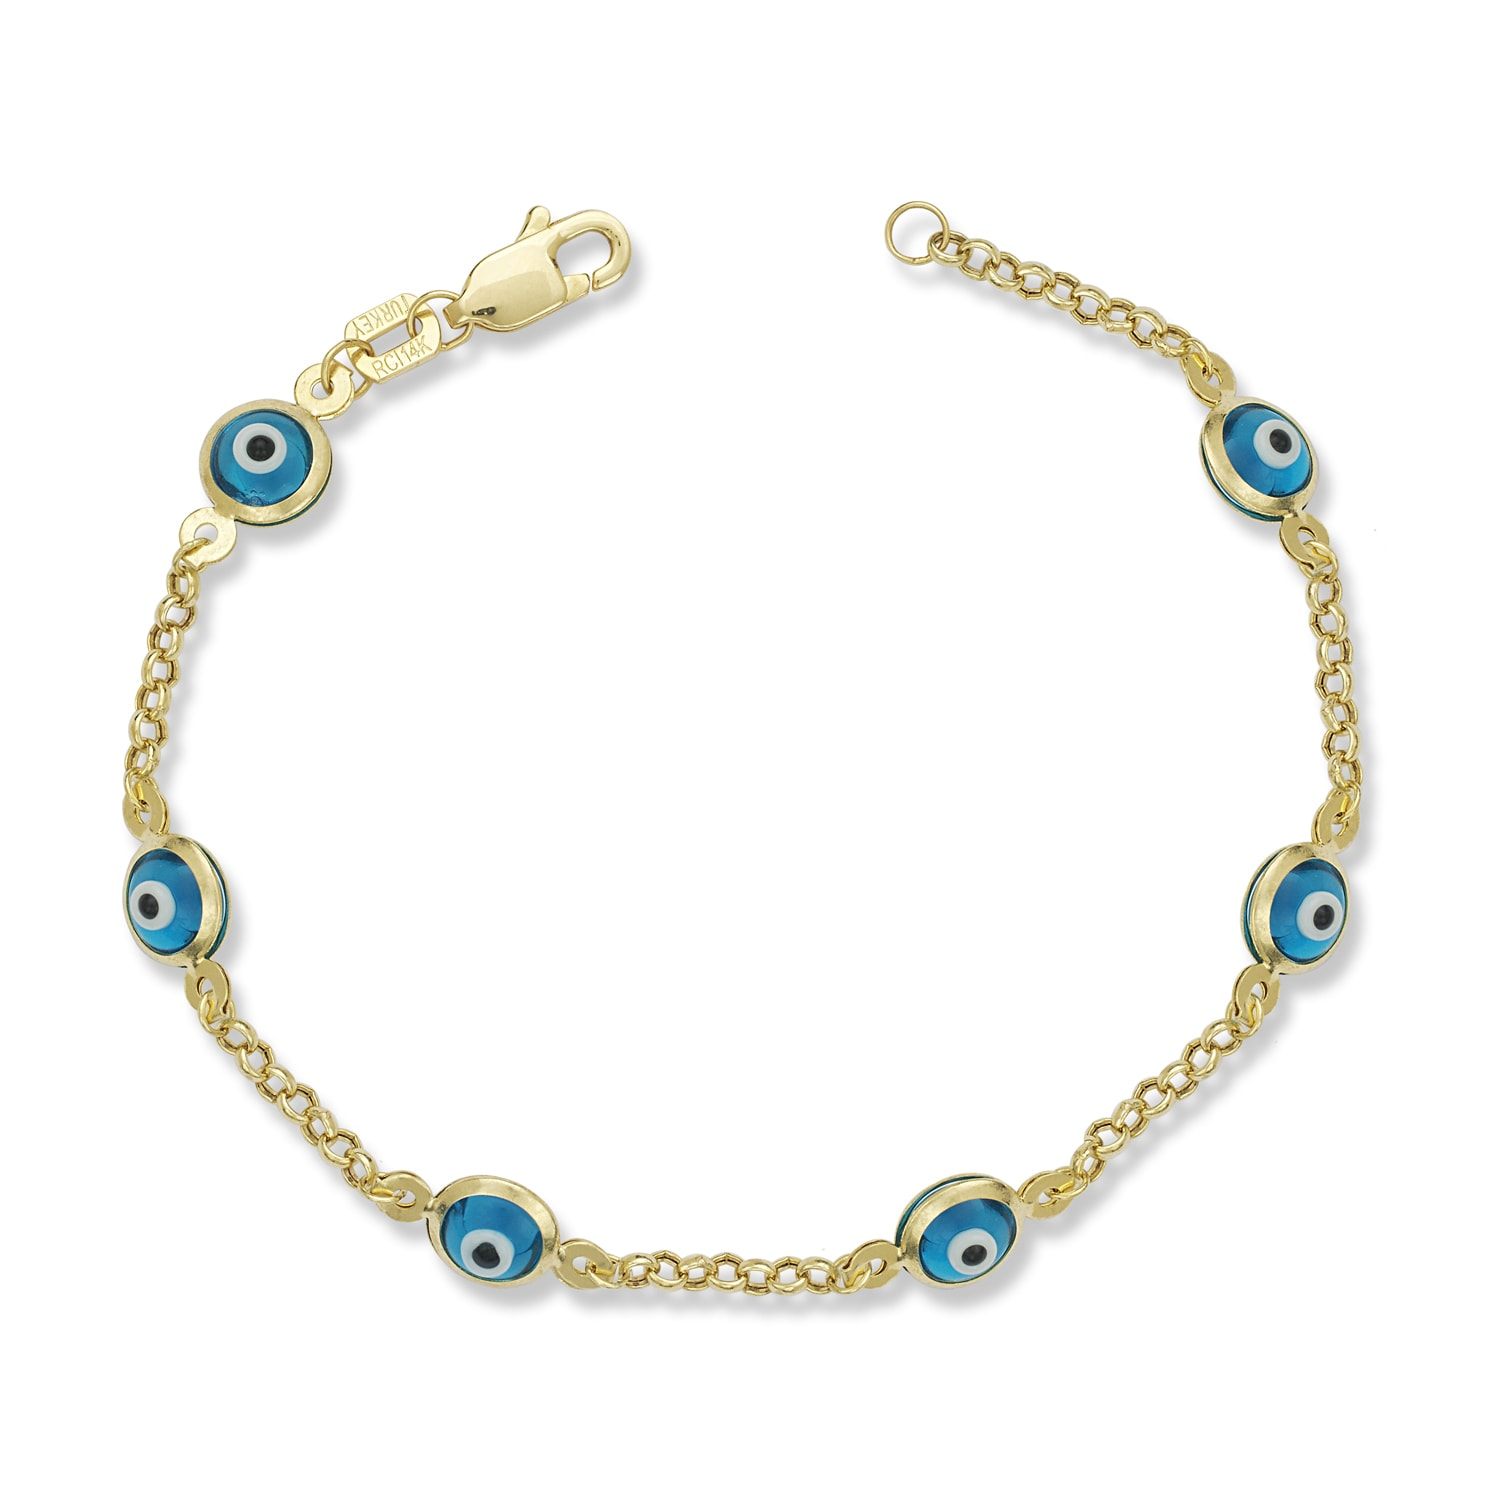 7e5c8216ed0c6 Shop childrens yellow gold enamel evil eye inch charm bracelet on sale free  shipping today overstock